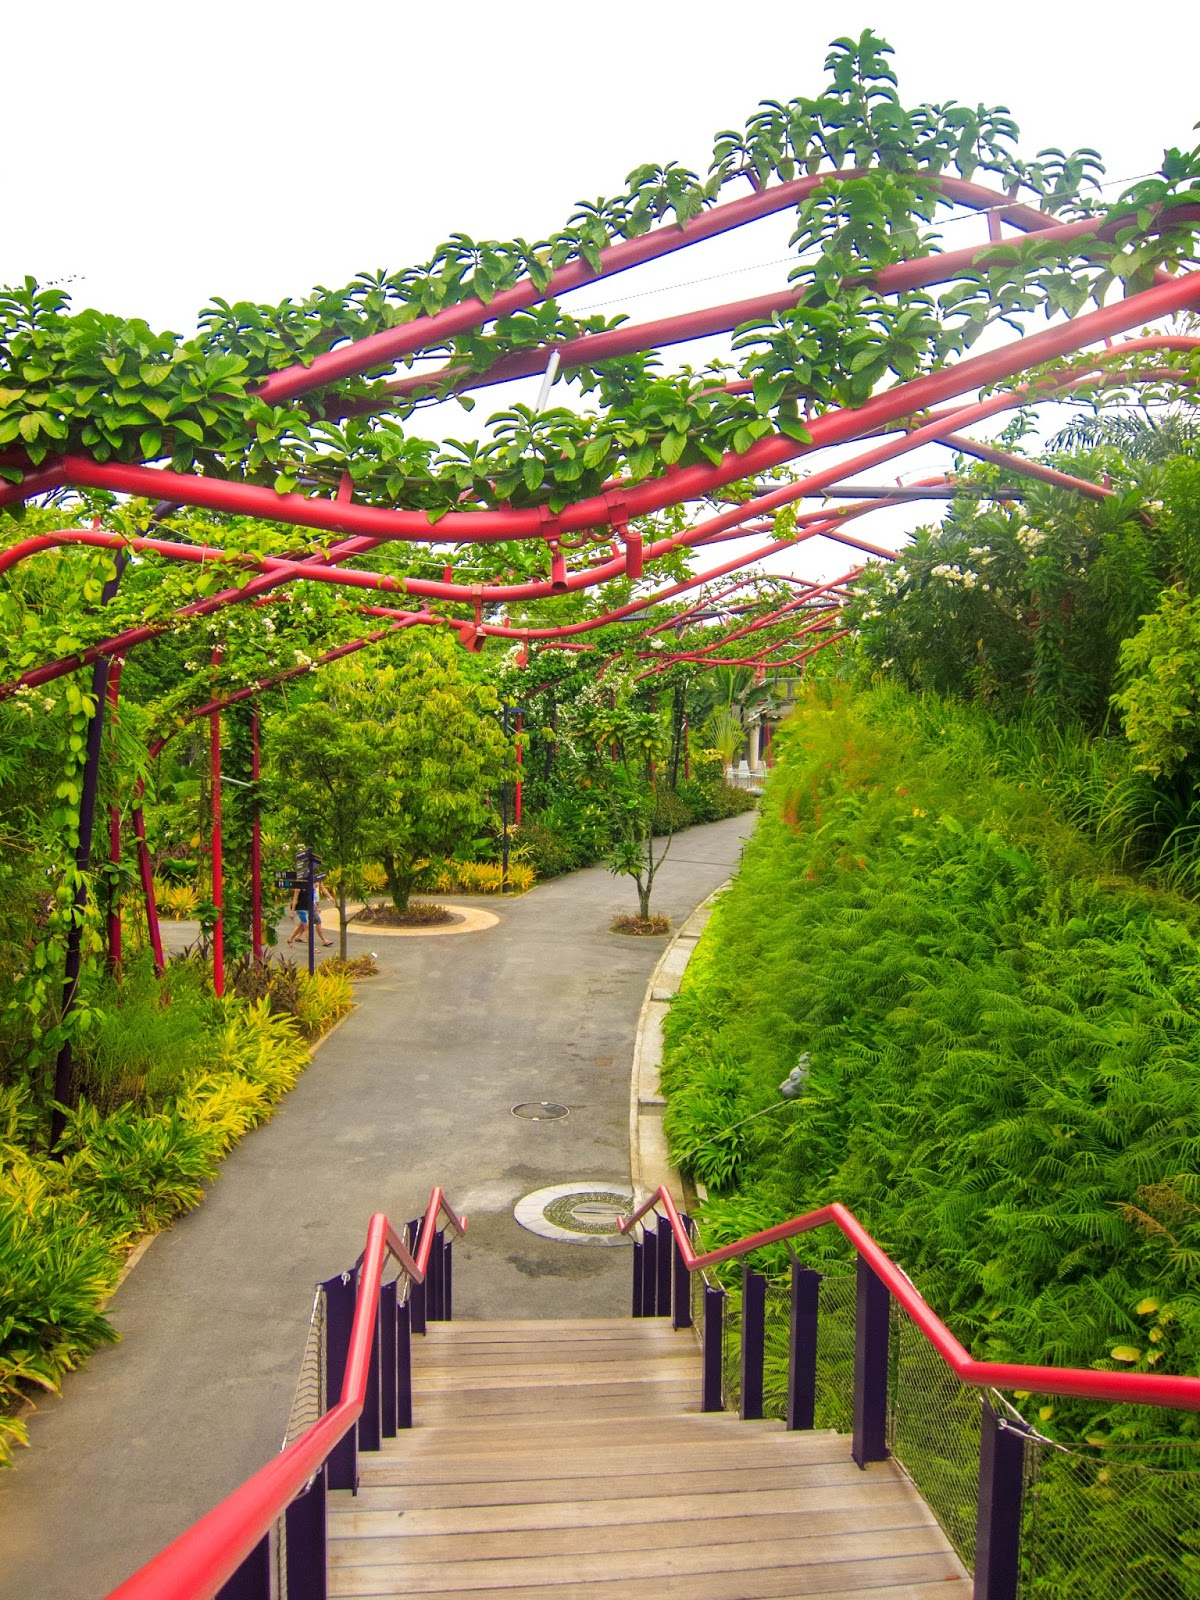 Beautiful greenery in the Outdoor Gardens, Gardens by the Bay in Singapore | Svelte Salivations - Travel